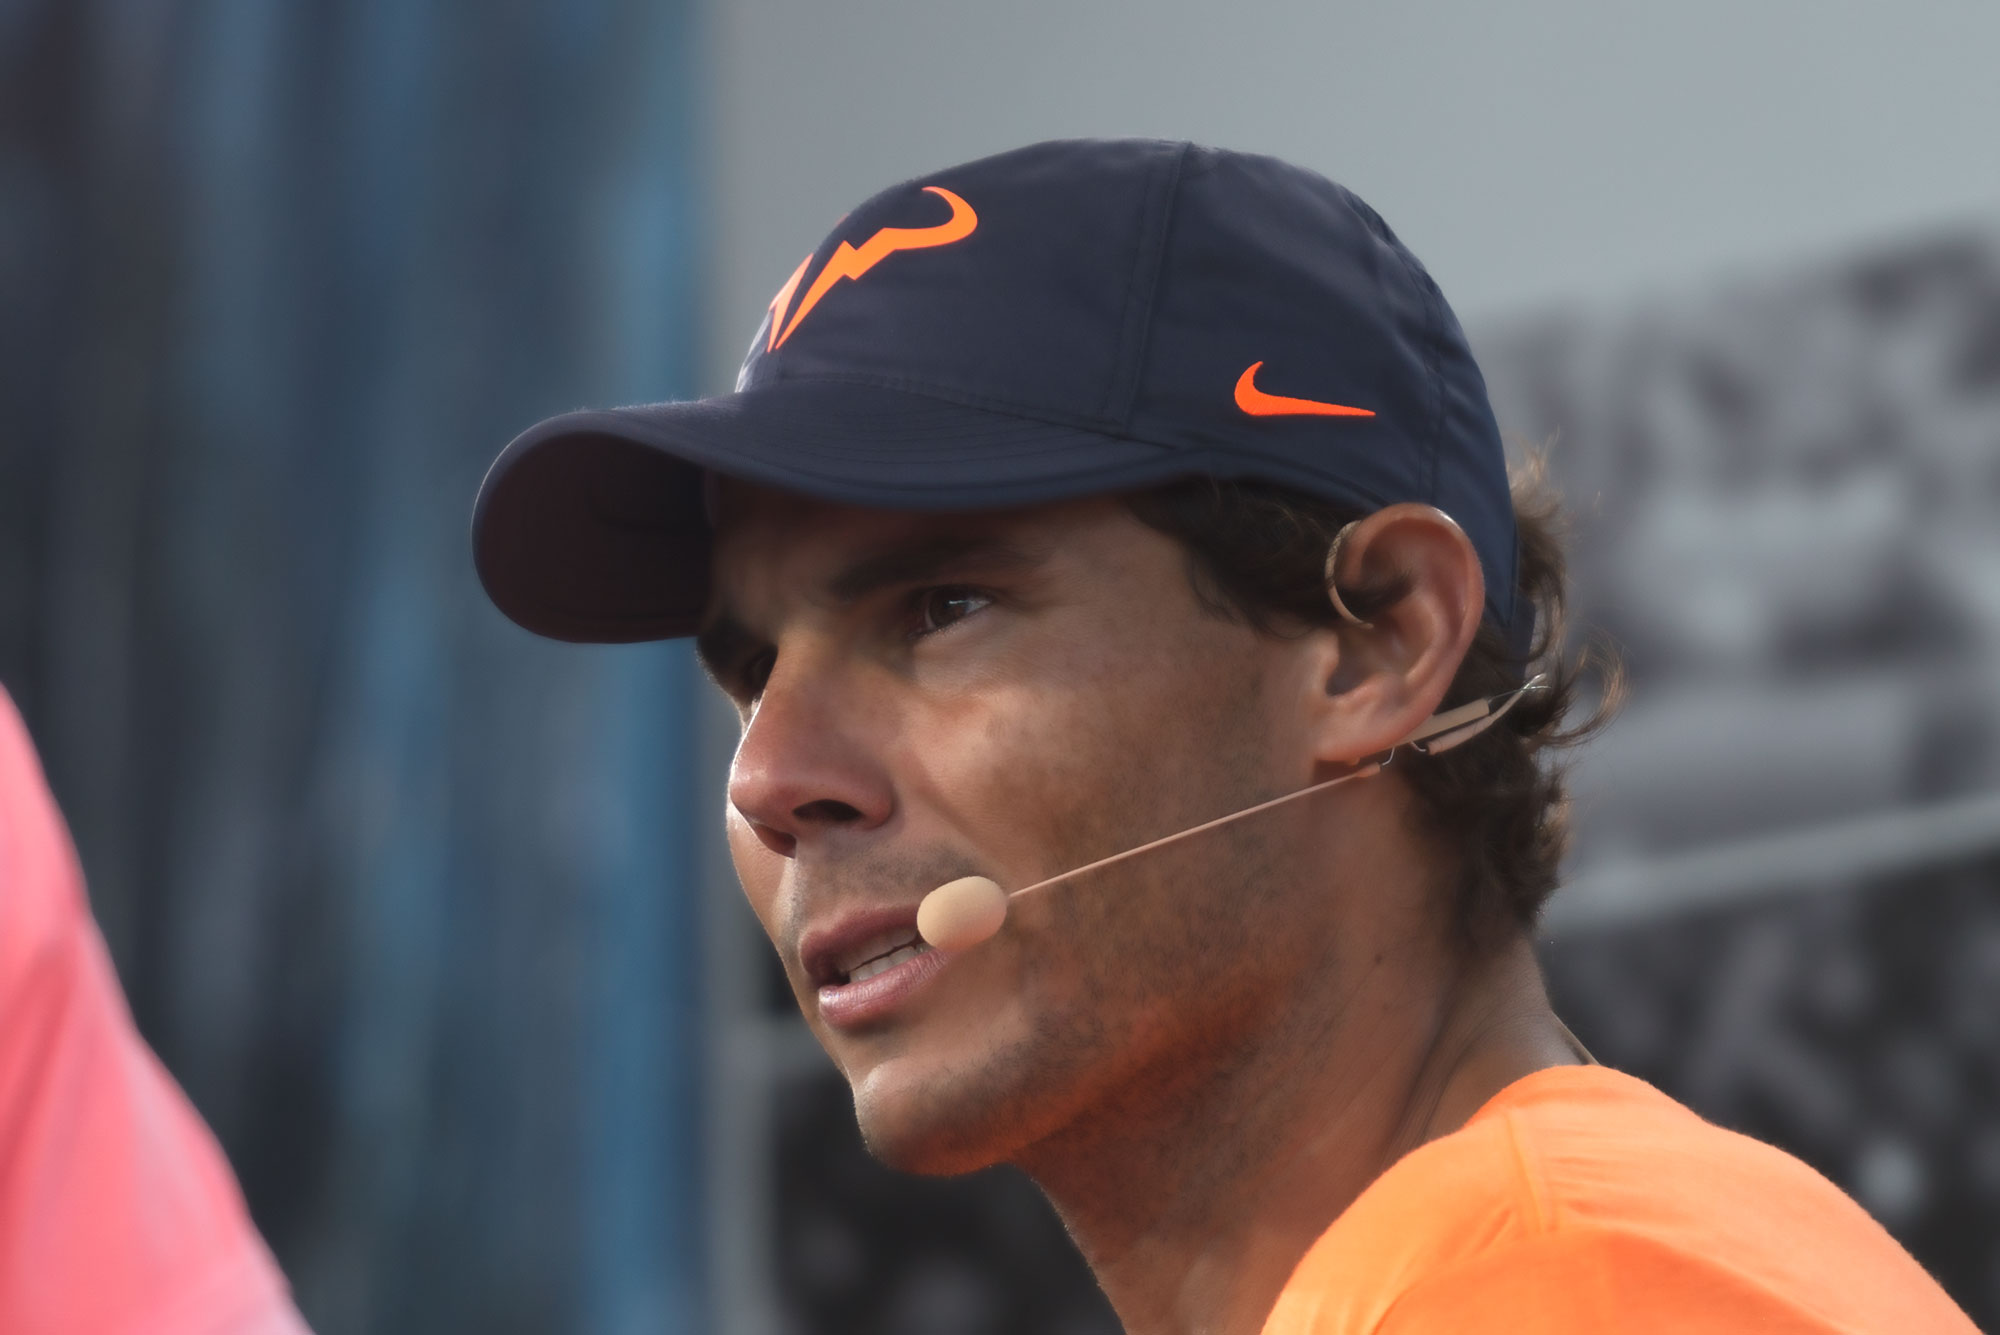 Nadal at the post match interview